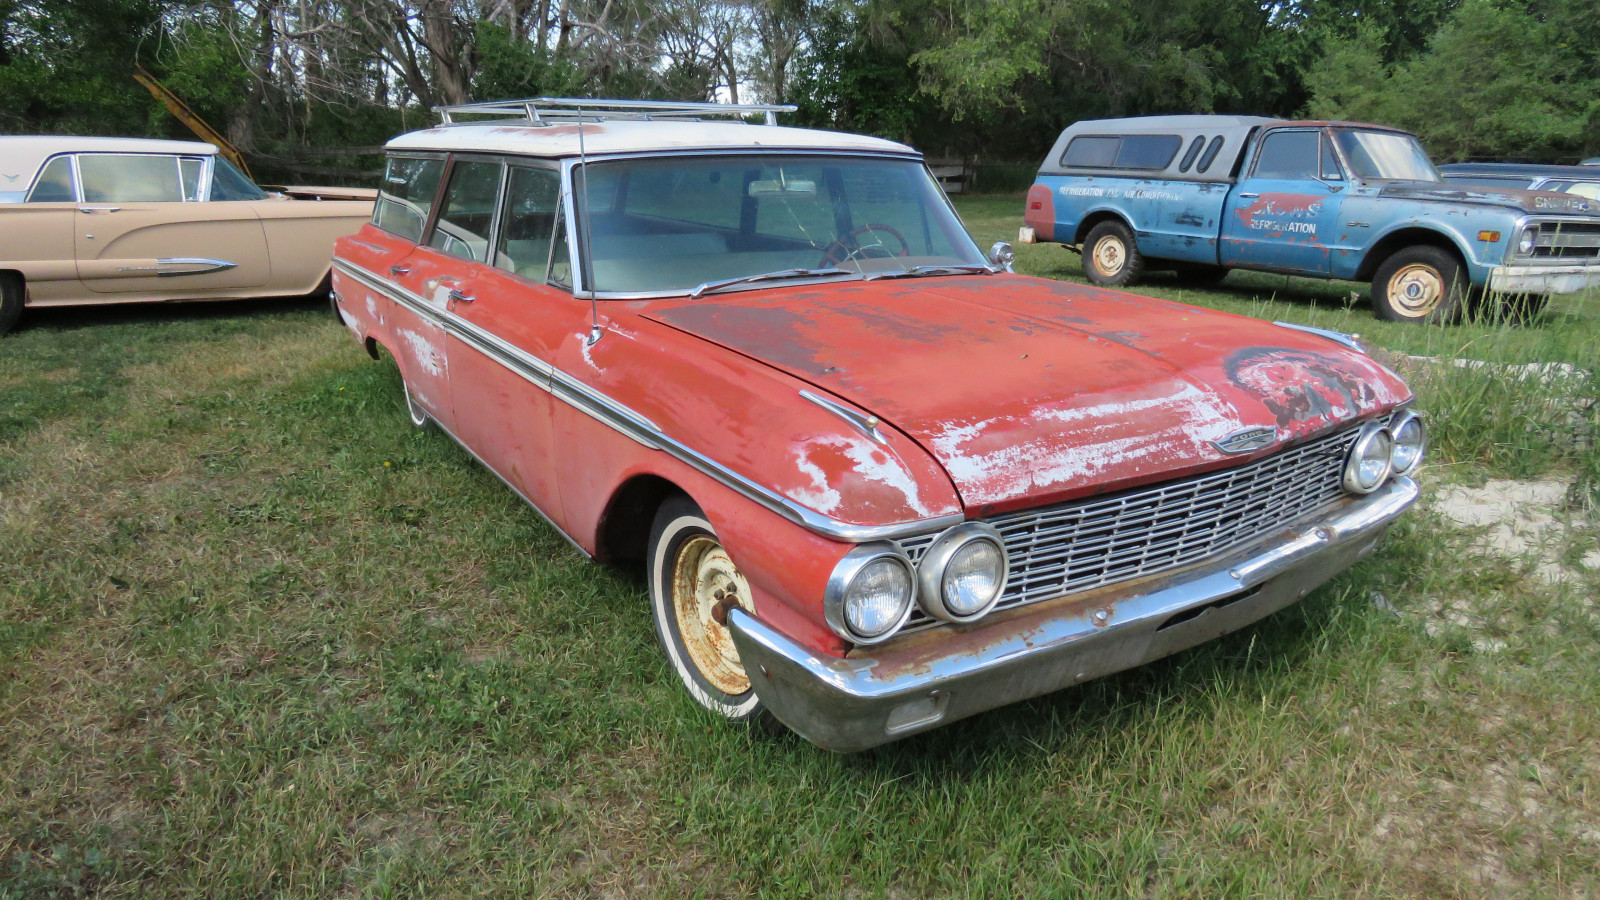 1962 Ford Country Sedan 4dr Wagon - Image 3